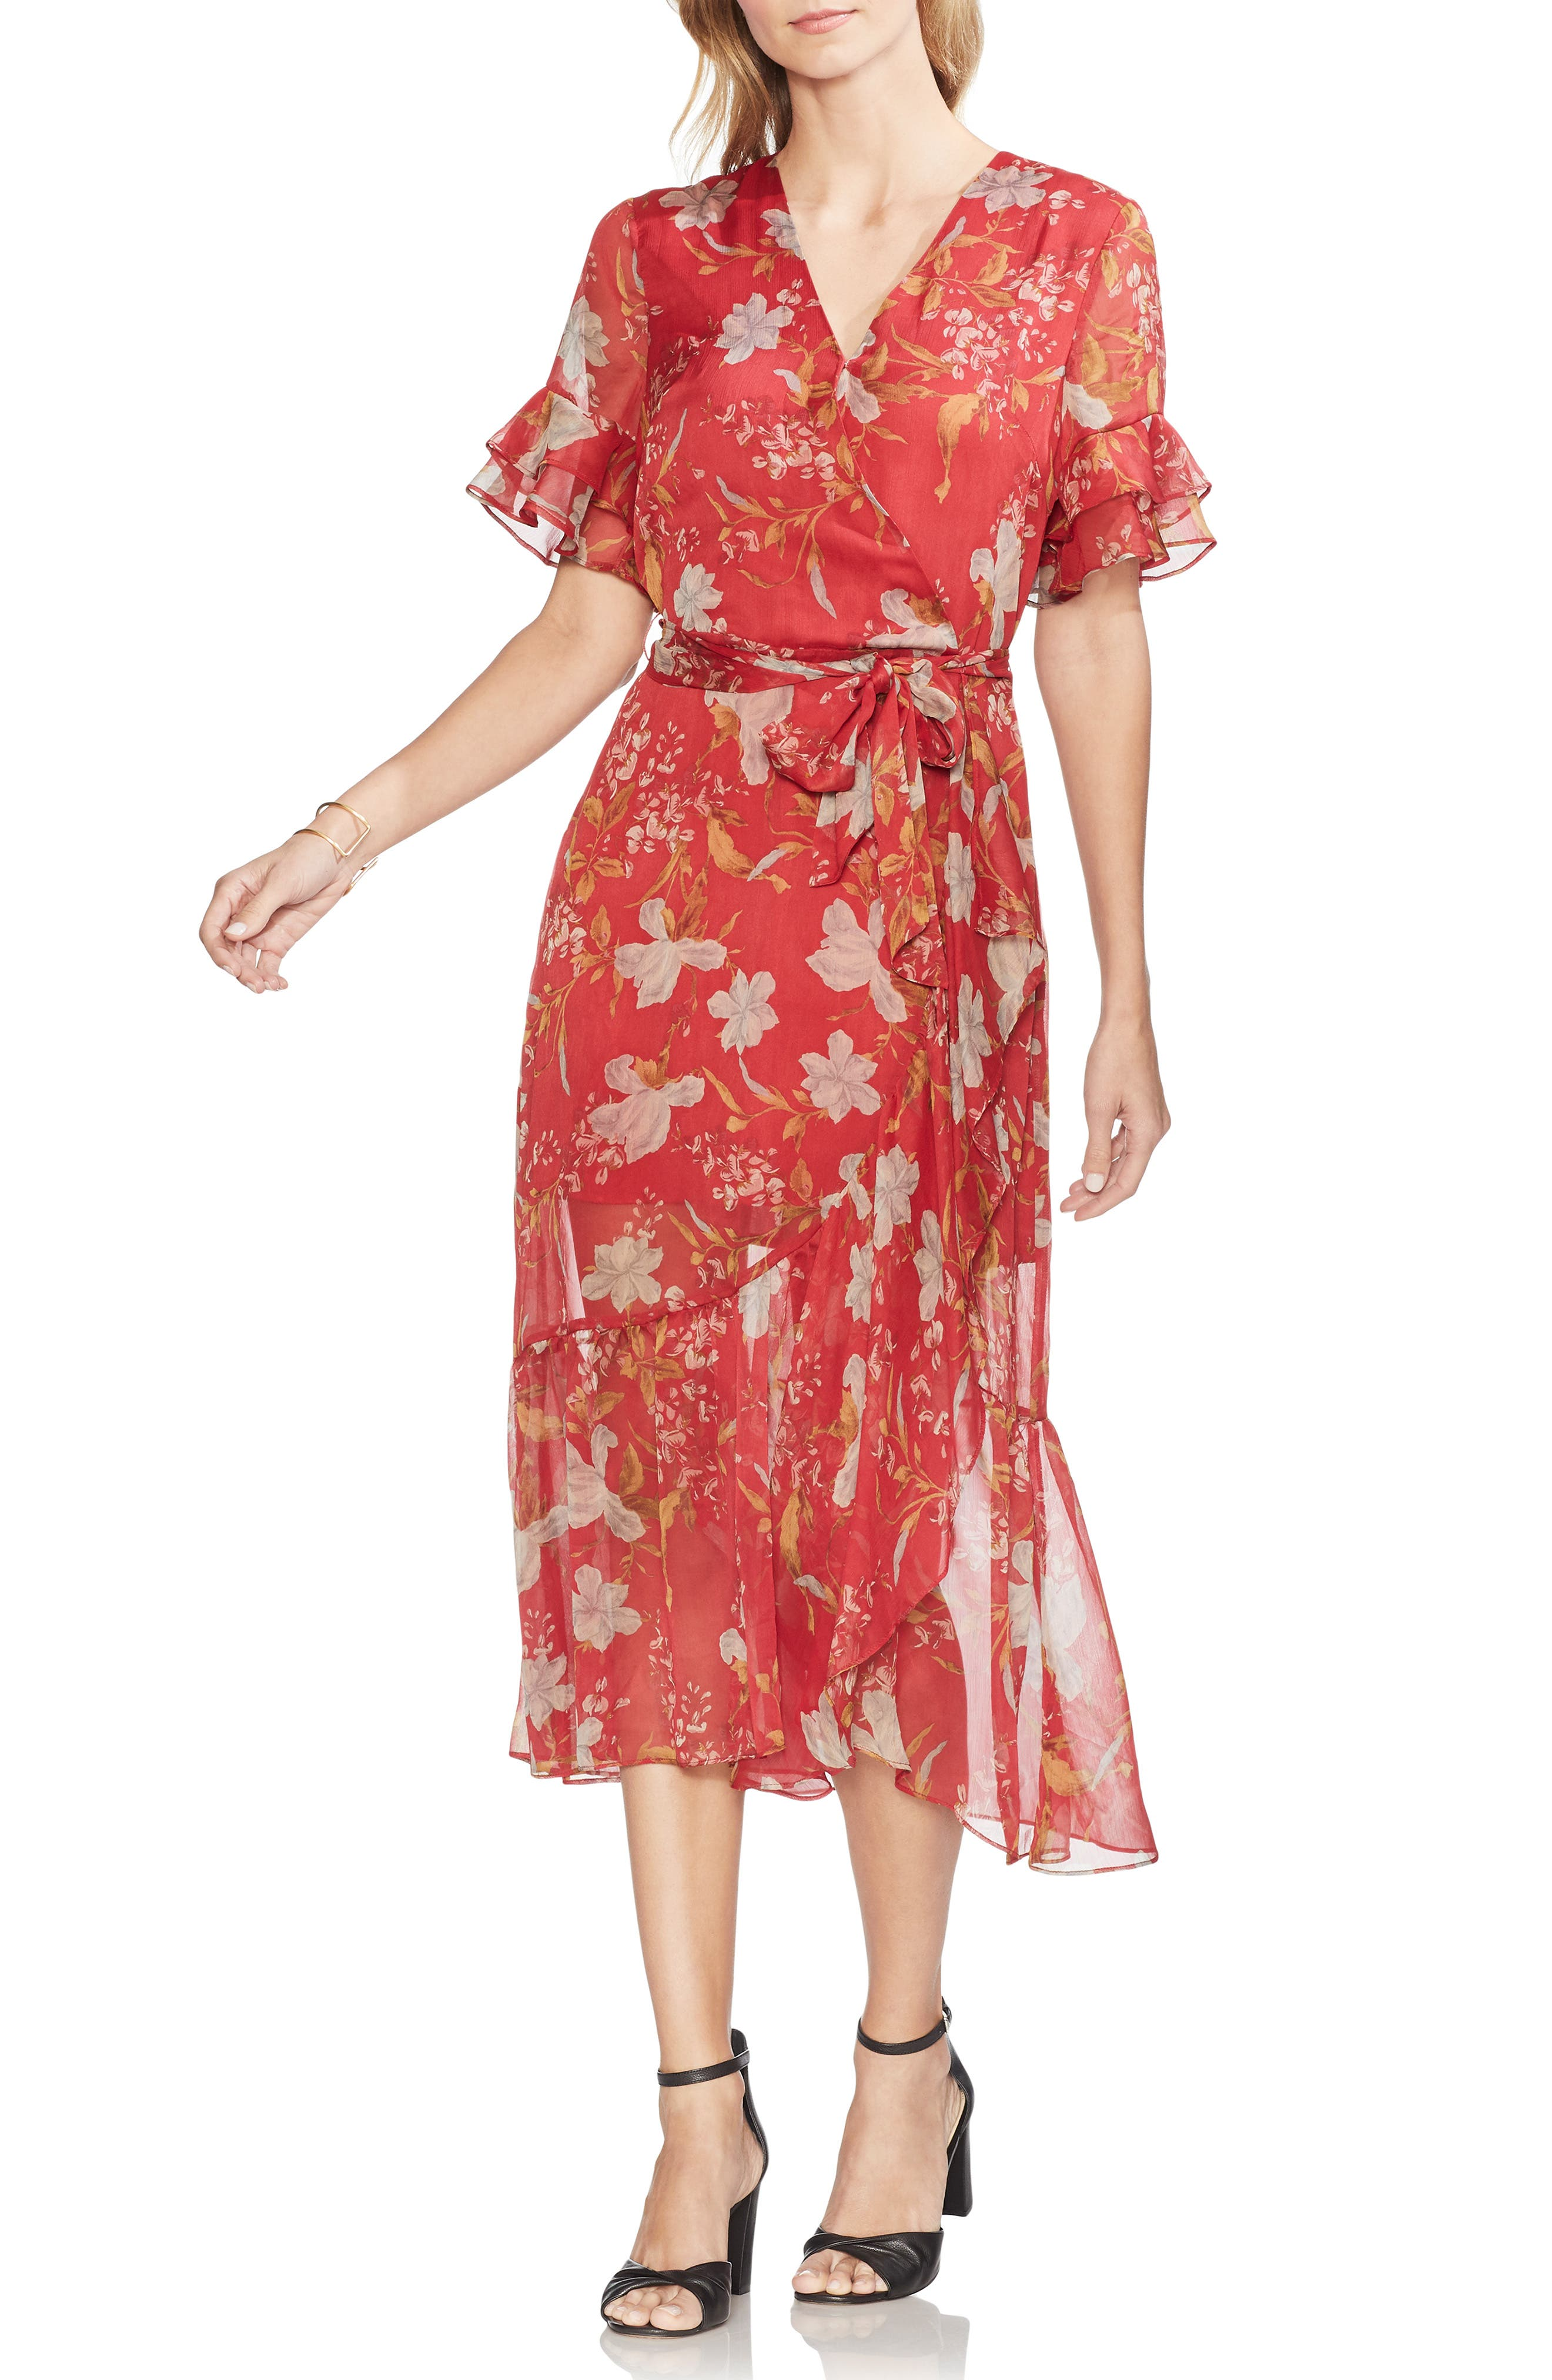 1930s Dresses | 30s Art Deco Dress Womens Vince Camuto Wildflower Tiered Ruffle Chiffon Dress Size 16 - Red $159.00 AT vintagedancer.com